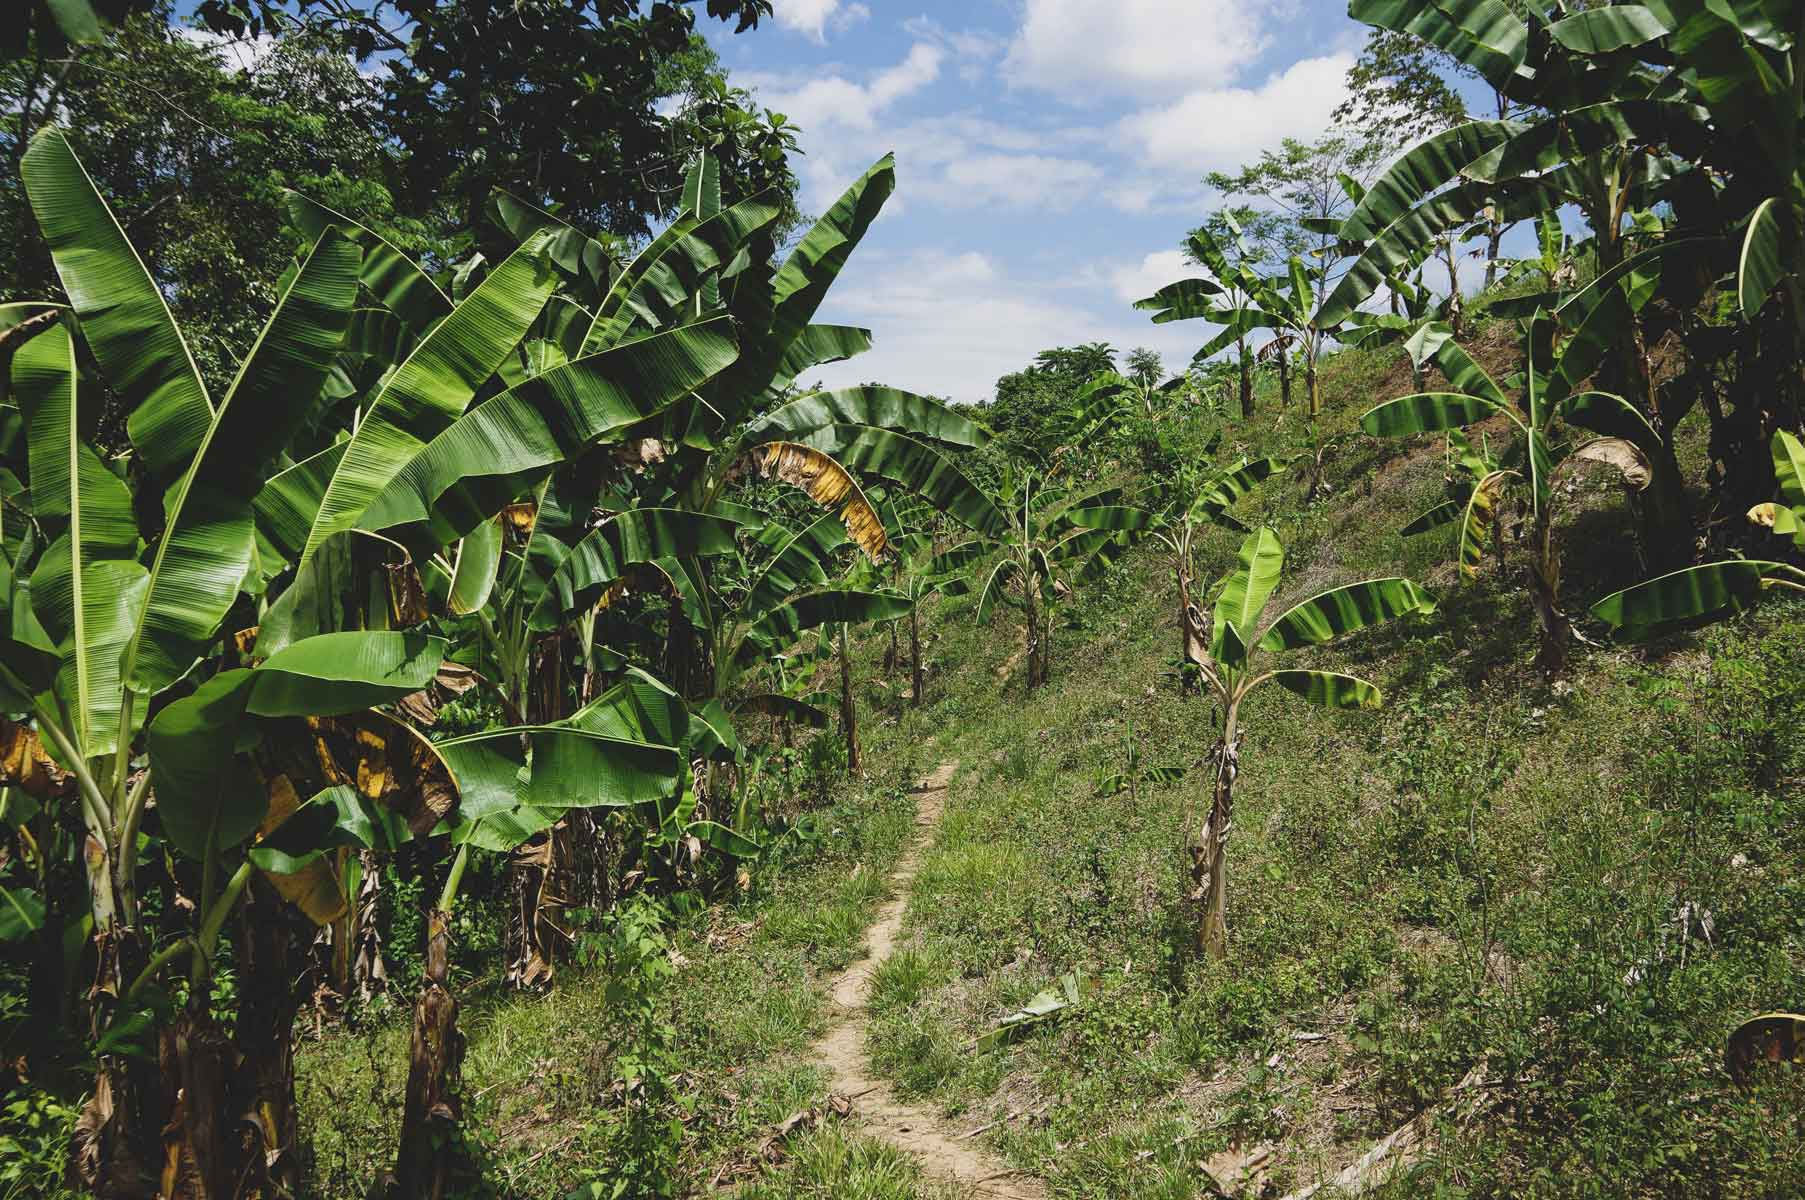 A banana plantation at Quirino Province.